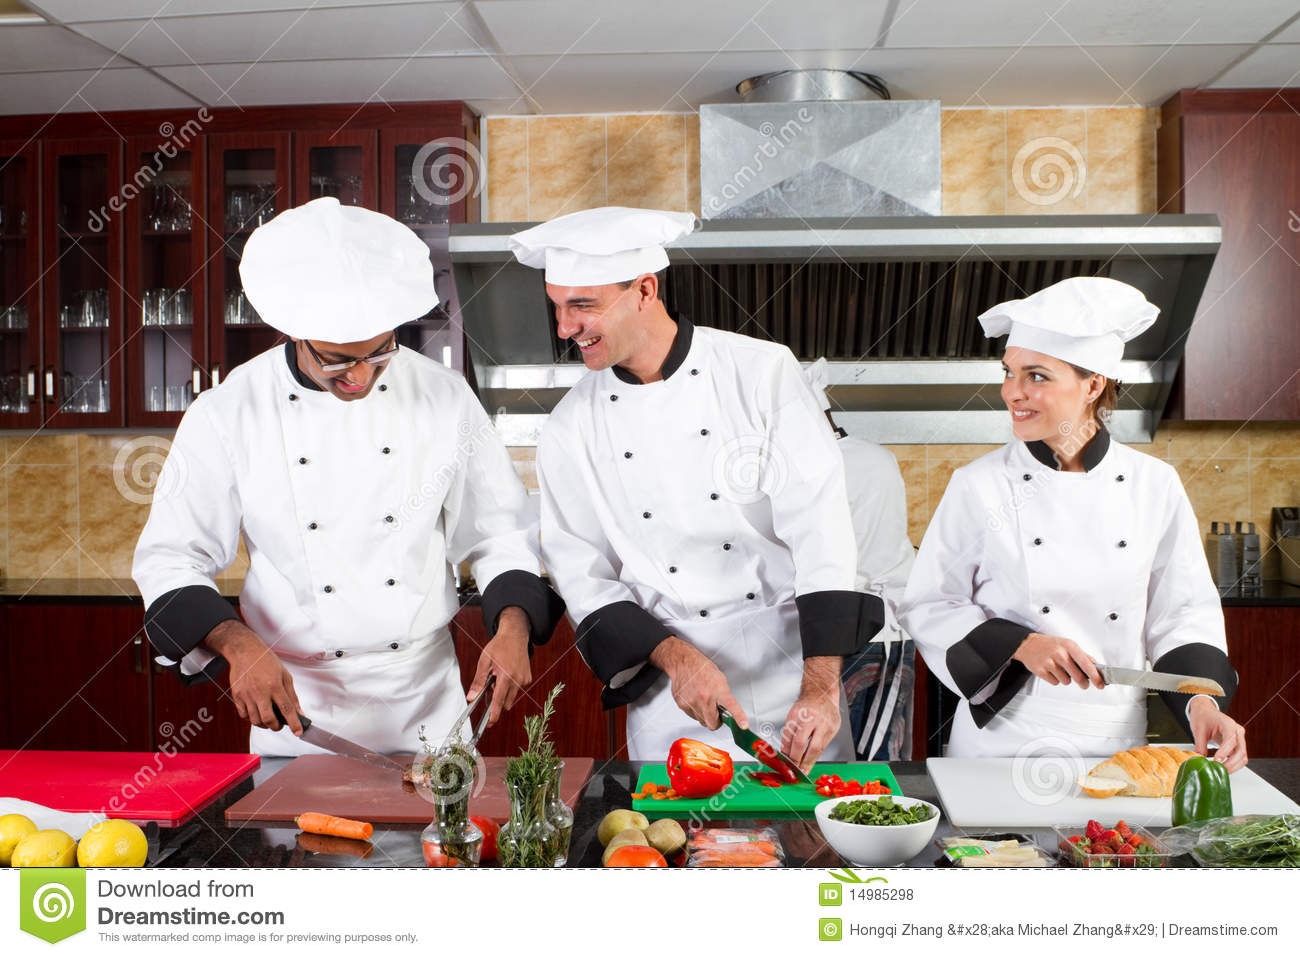 Chefs cooking stock photo. Image of clothing, chop, cook - 14985298